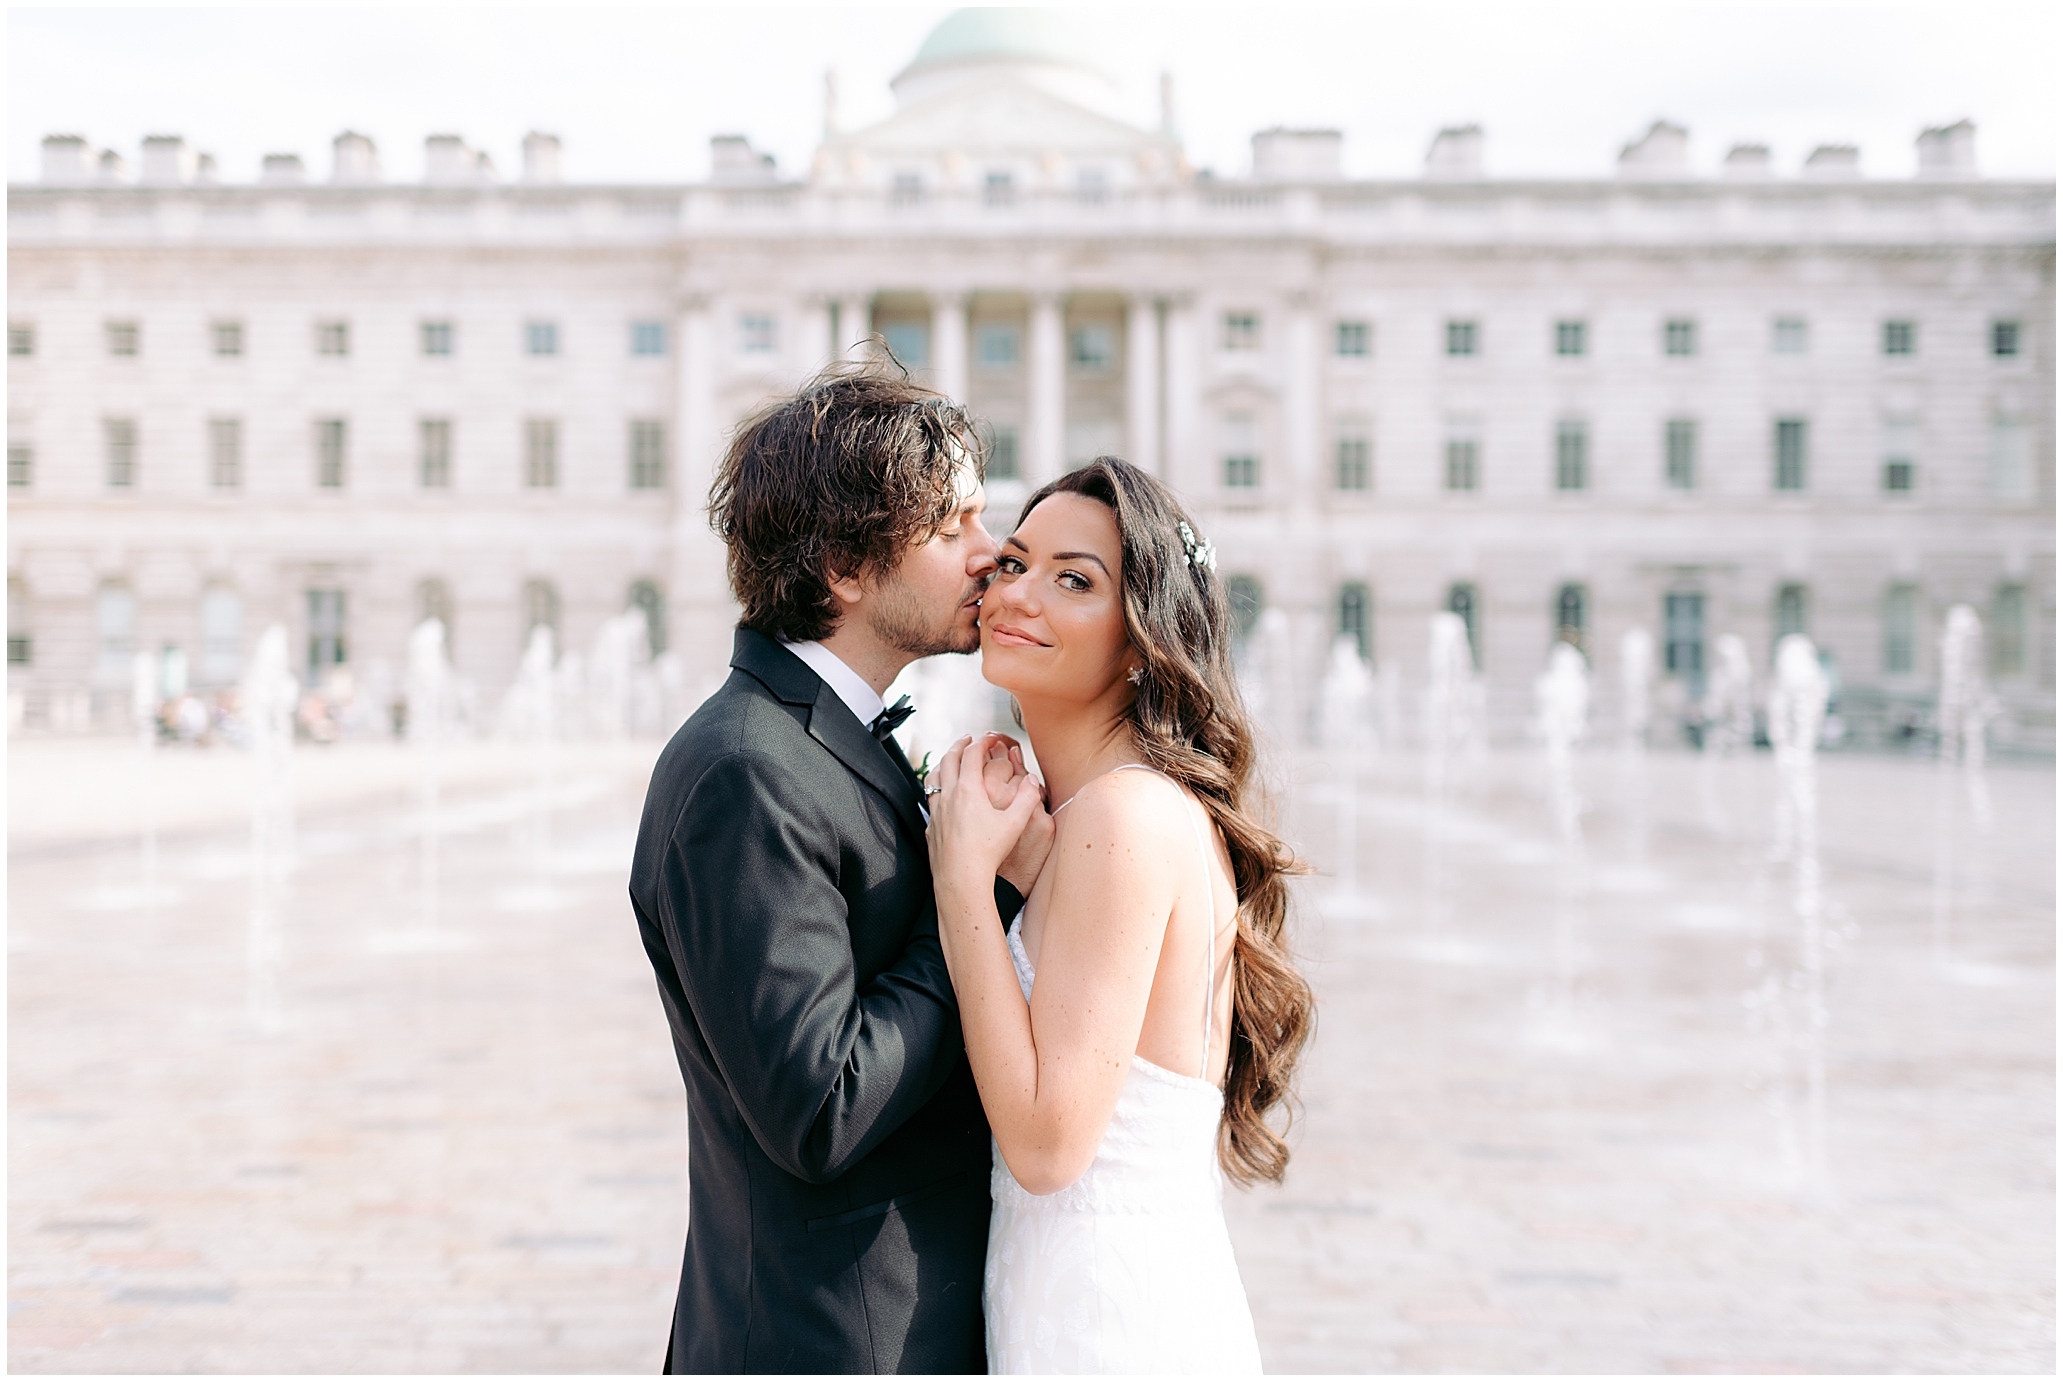 Spring Somerset House Wedding | Rob & Jess - weddings - London wedding photographerSomerset houseNkimaPhotography 0073